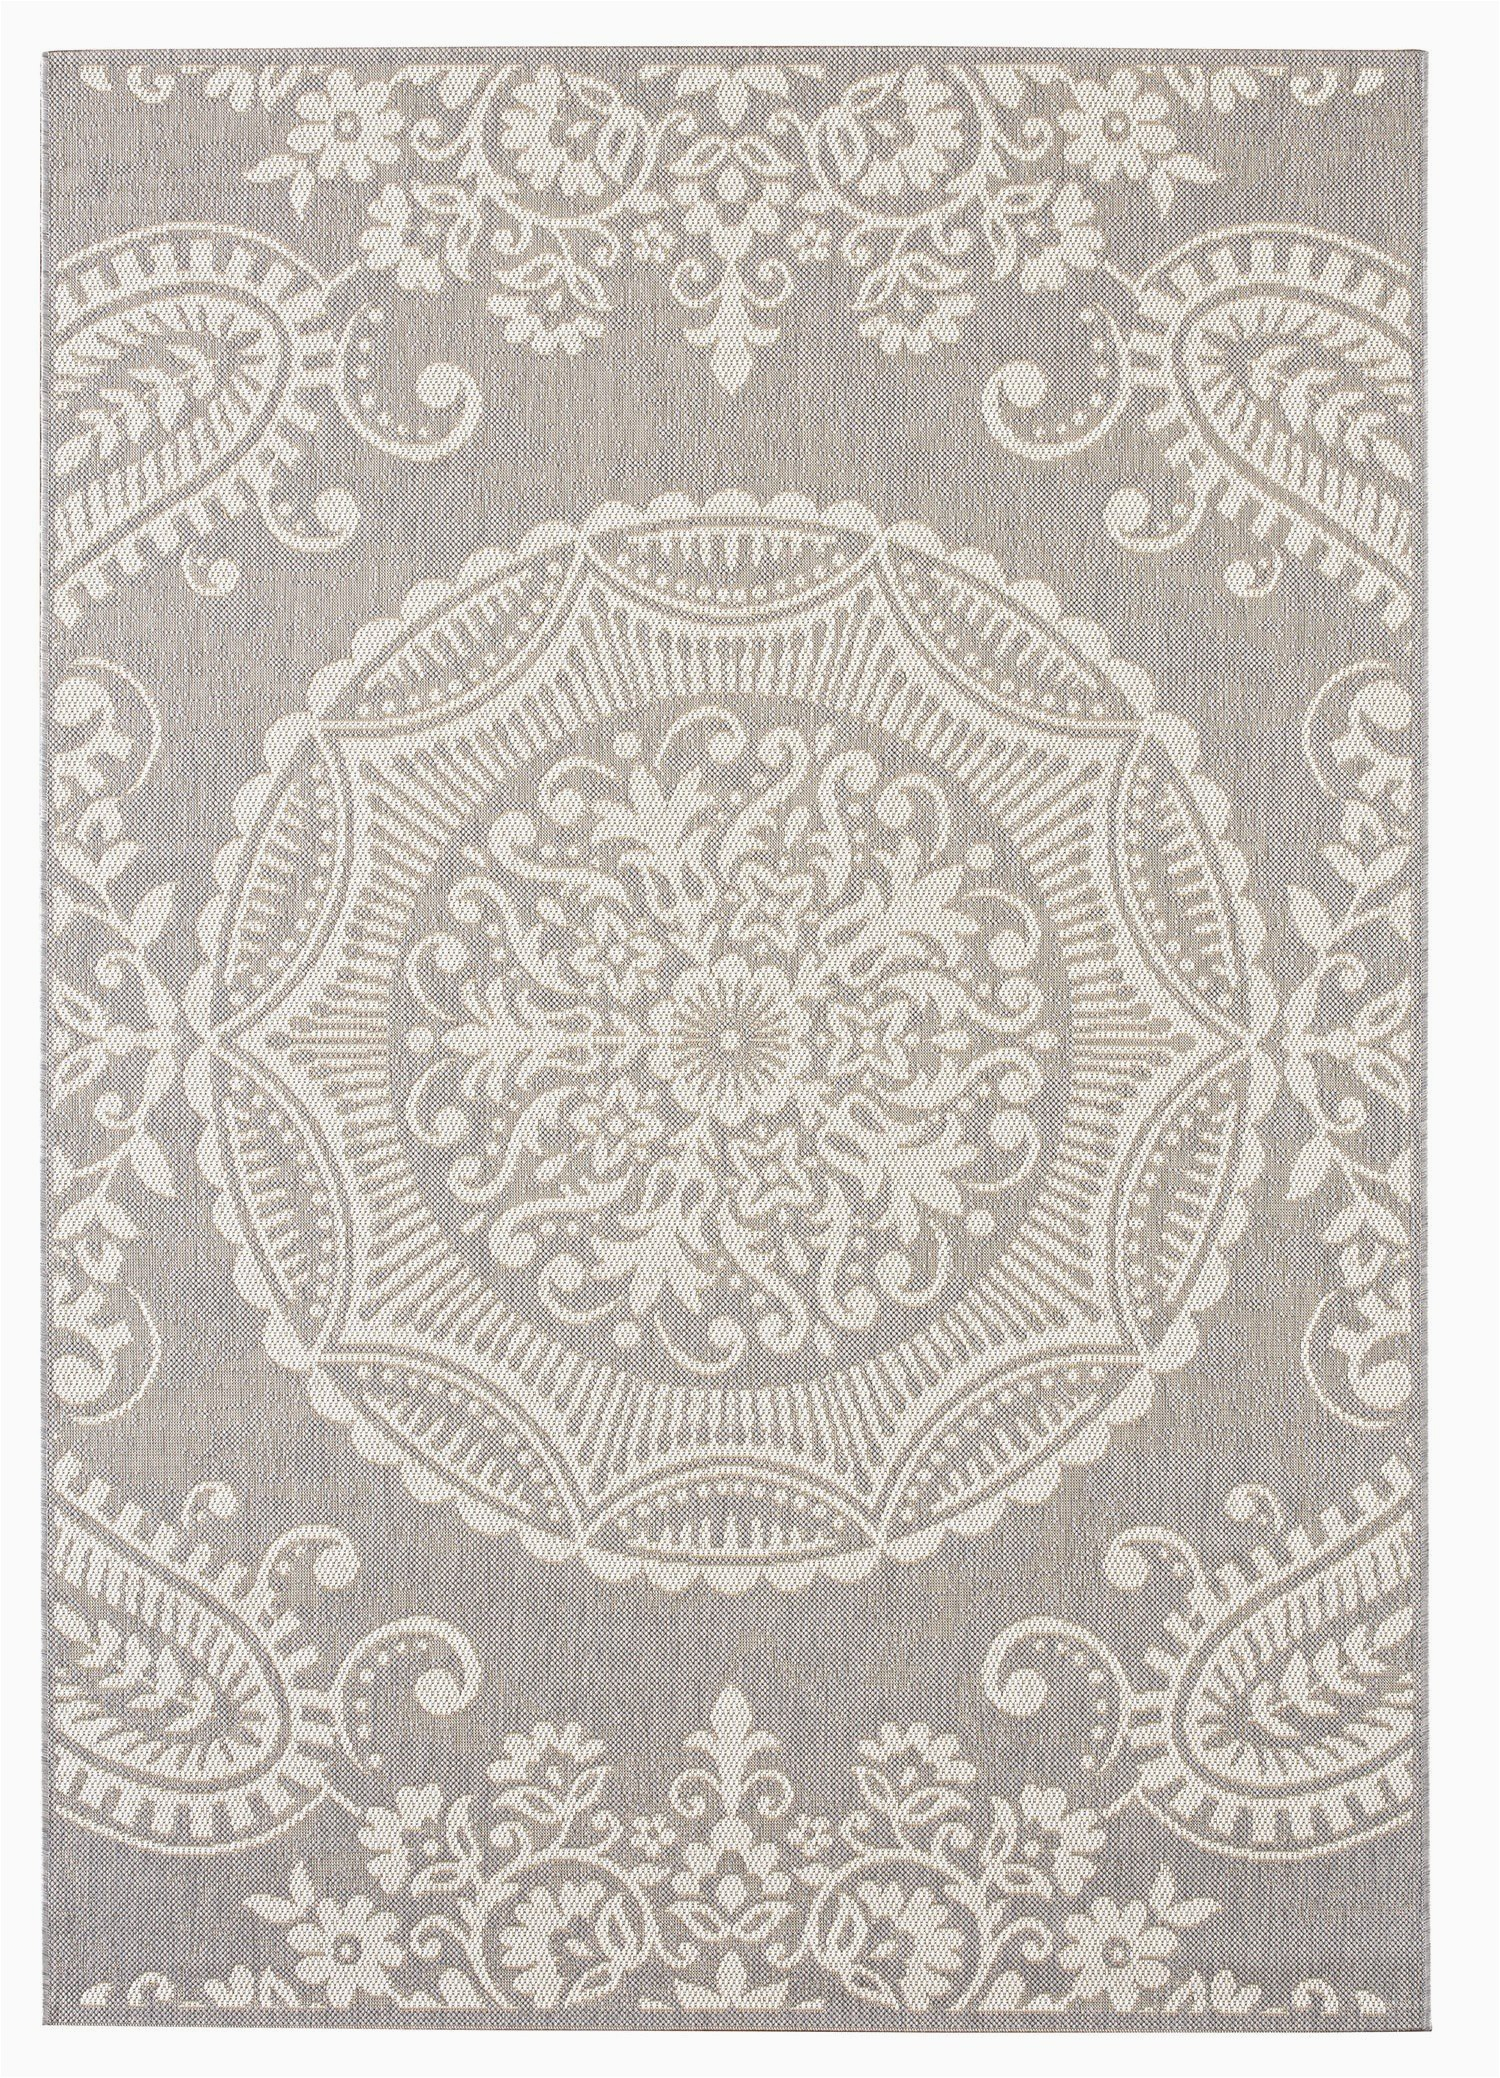 balta rugs highland indoor outdoor area rug 5 x 8 light grey